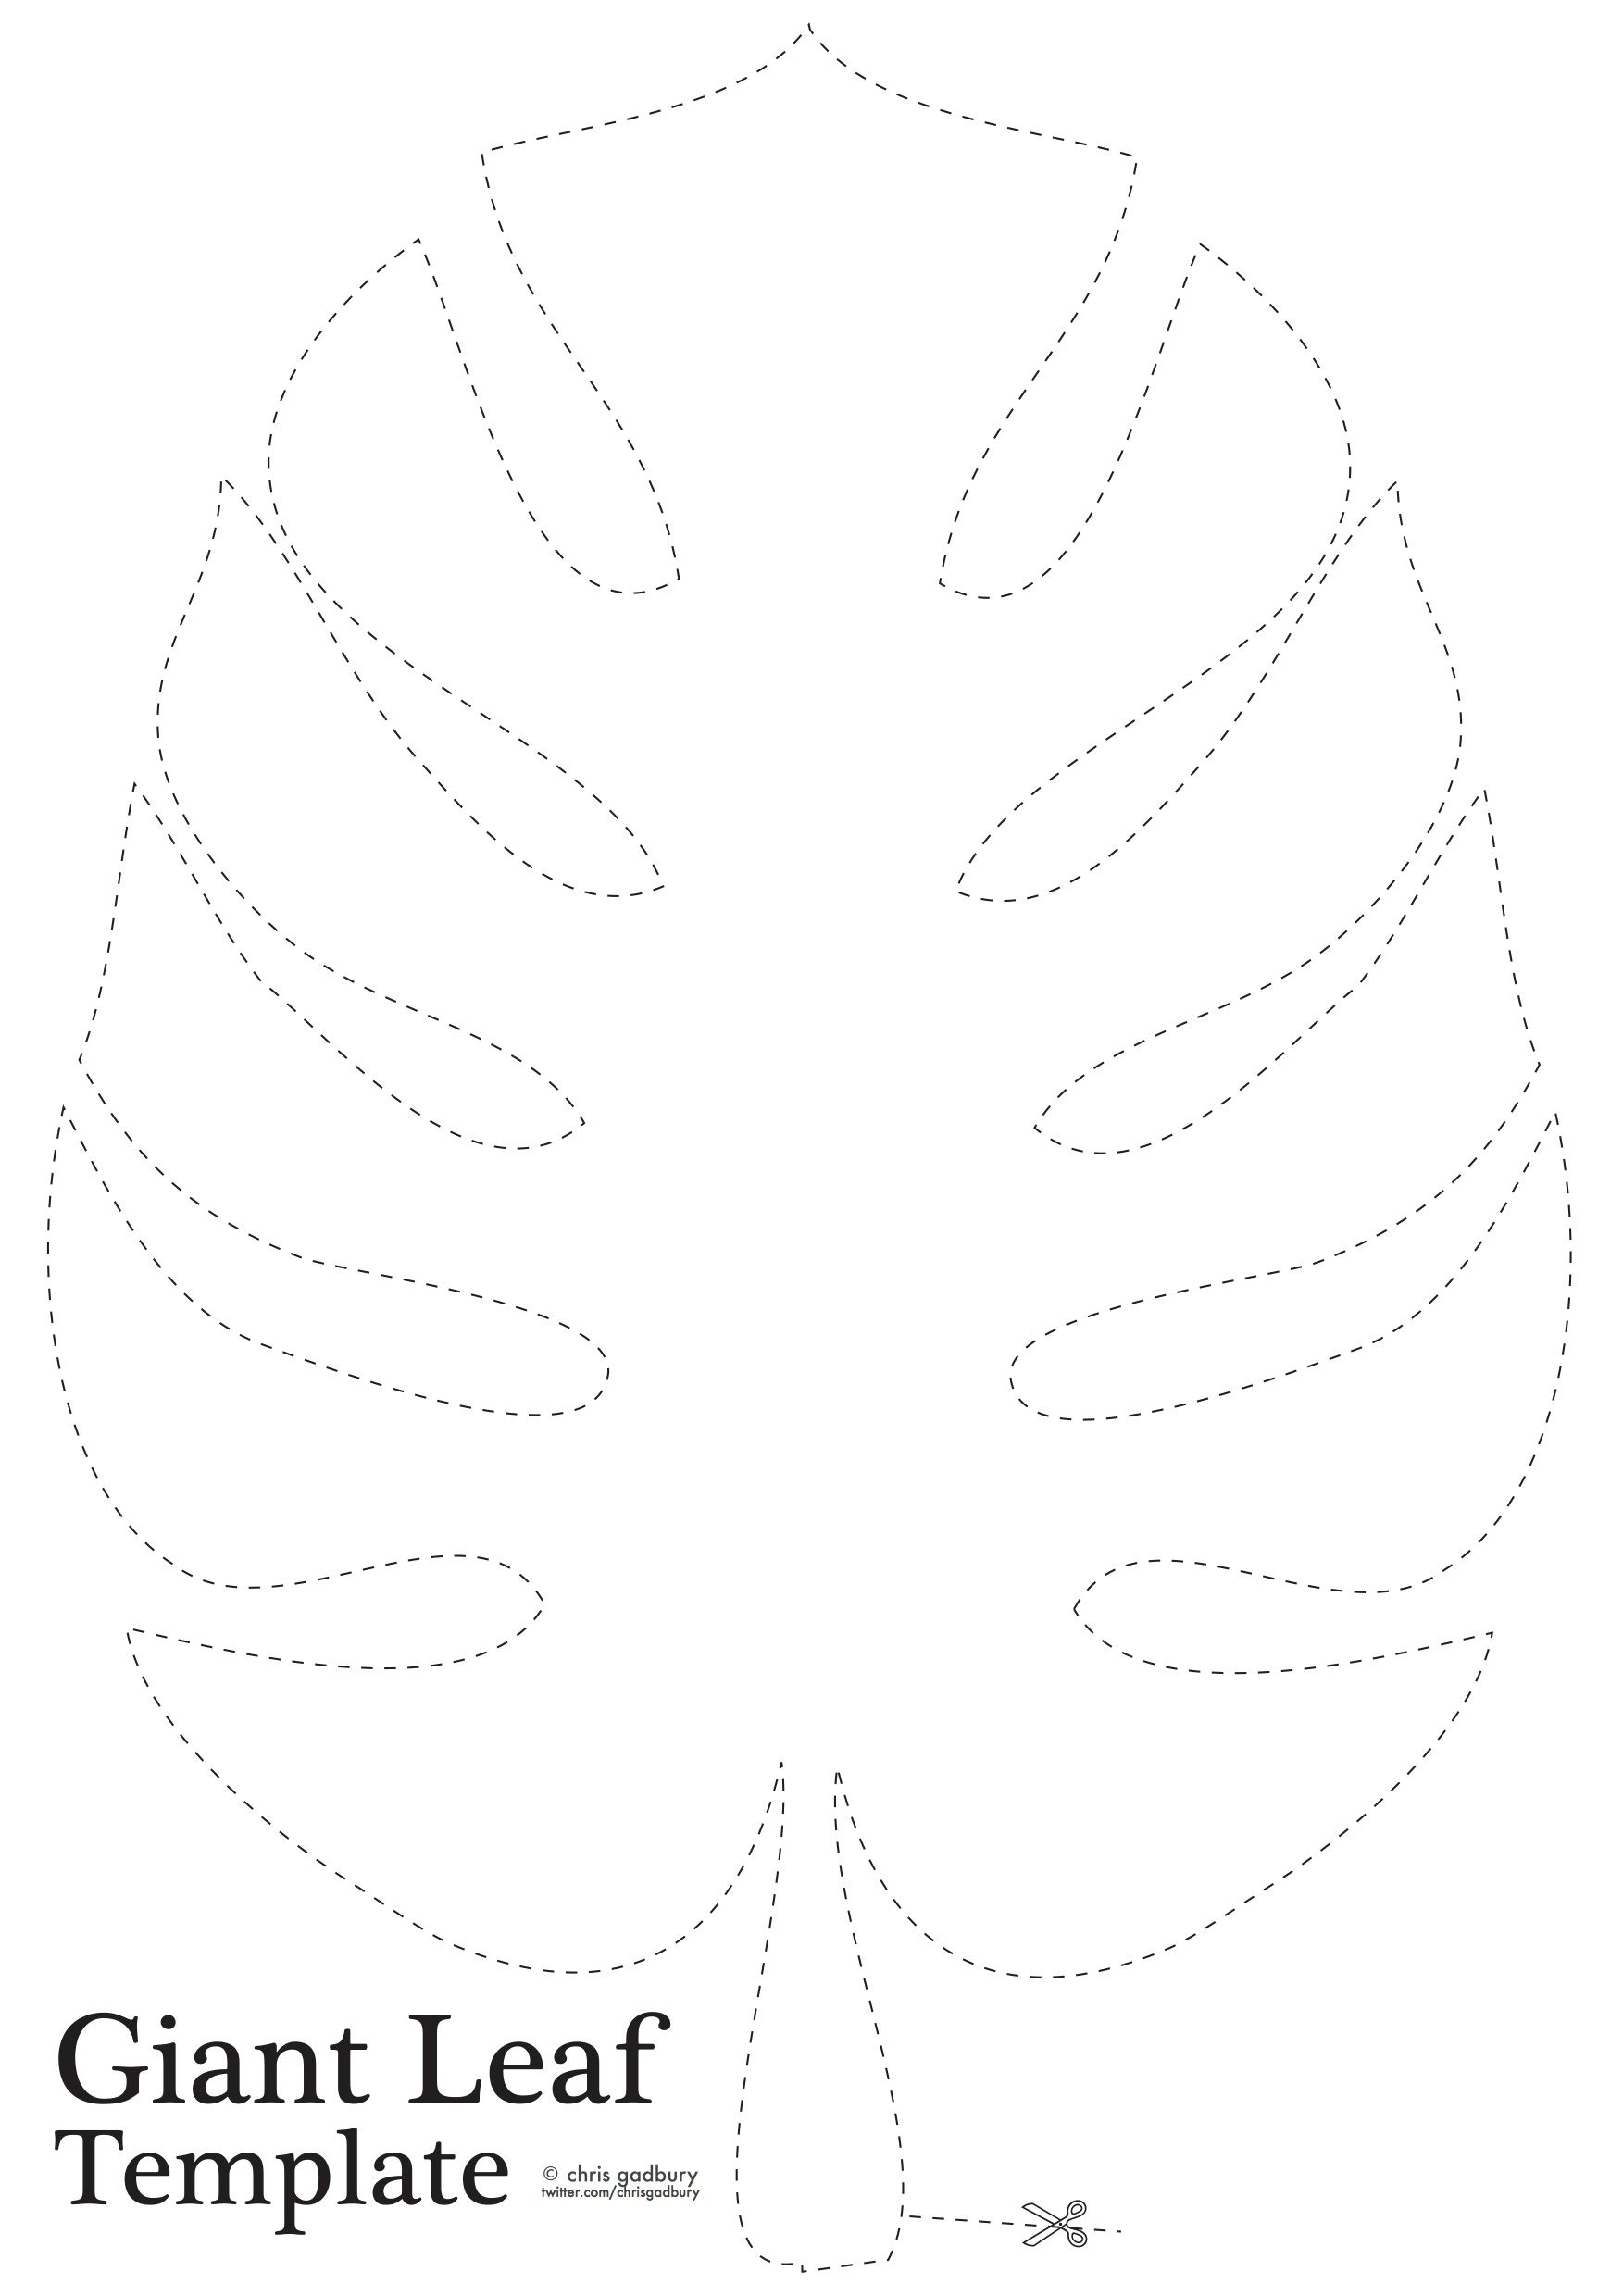 Jungle leaf template diy paper leaf diy paper for Jungle leaf templates to cut out